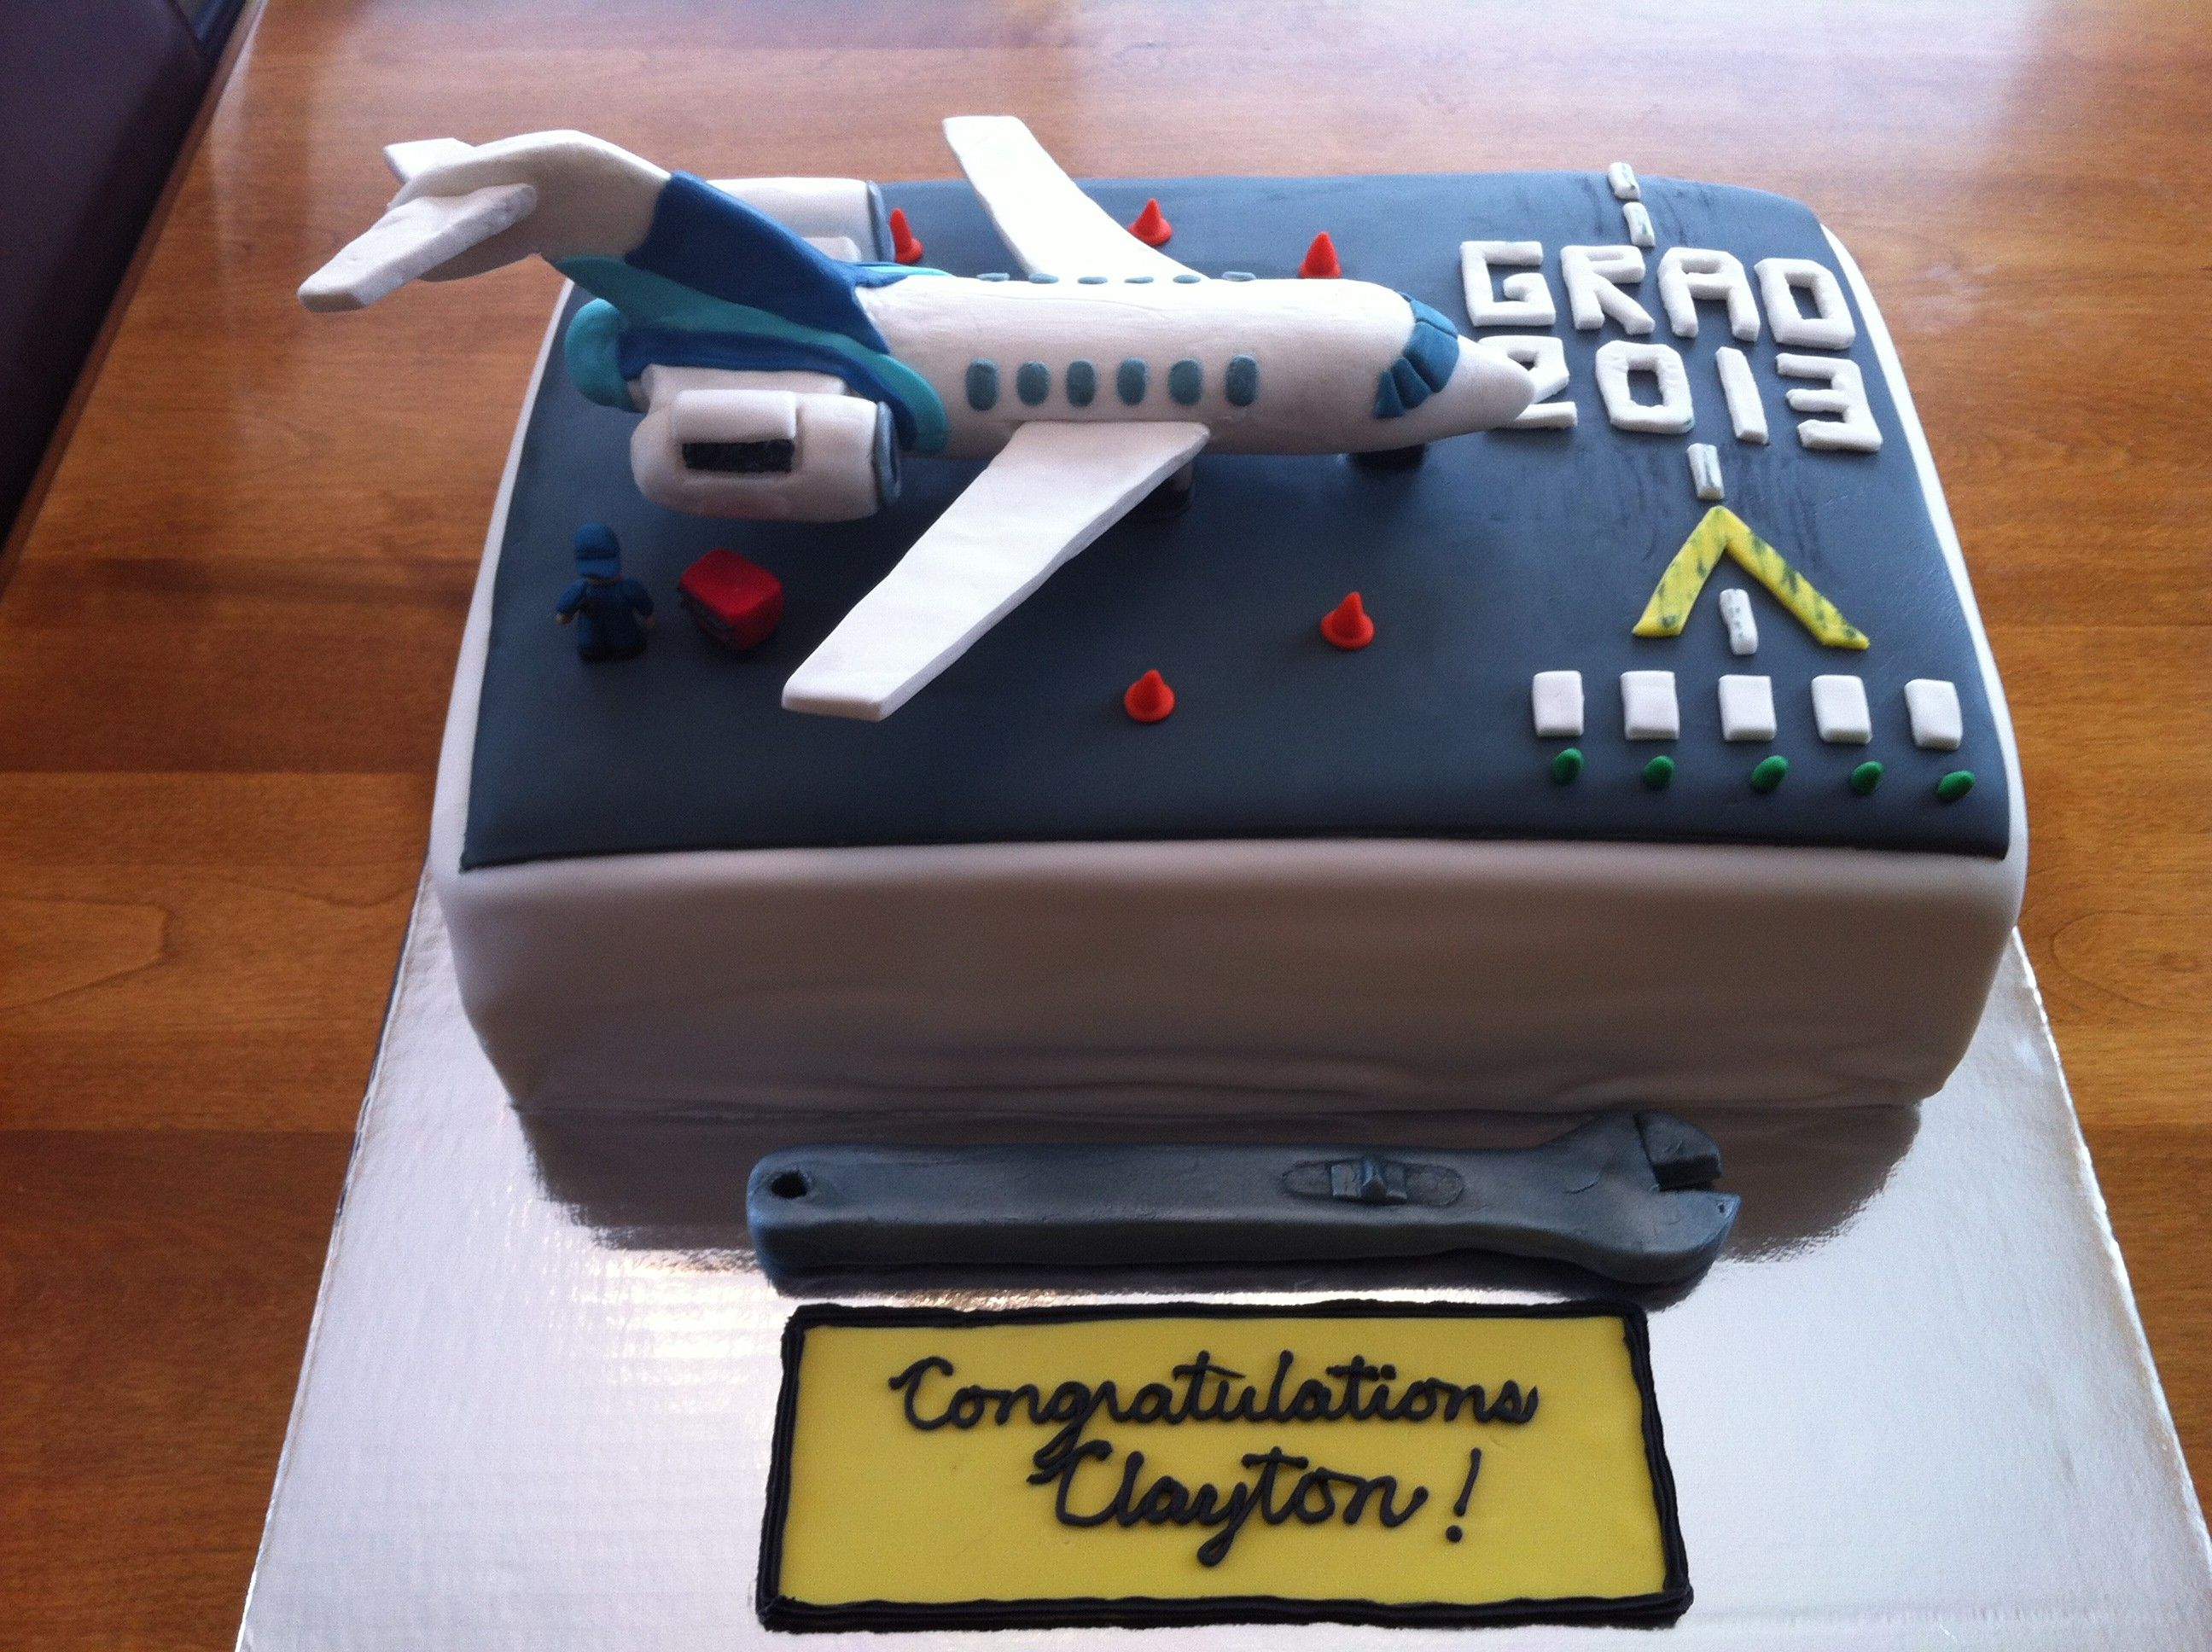 Aircraft Mechanics Program Grad Cake My Gluten Free Baking